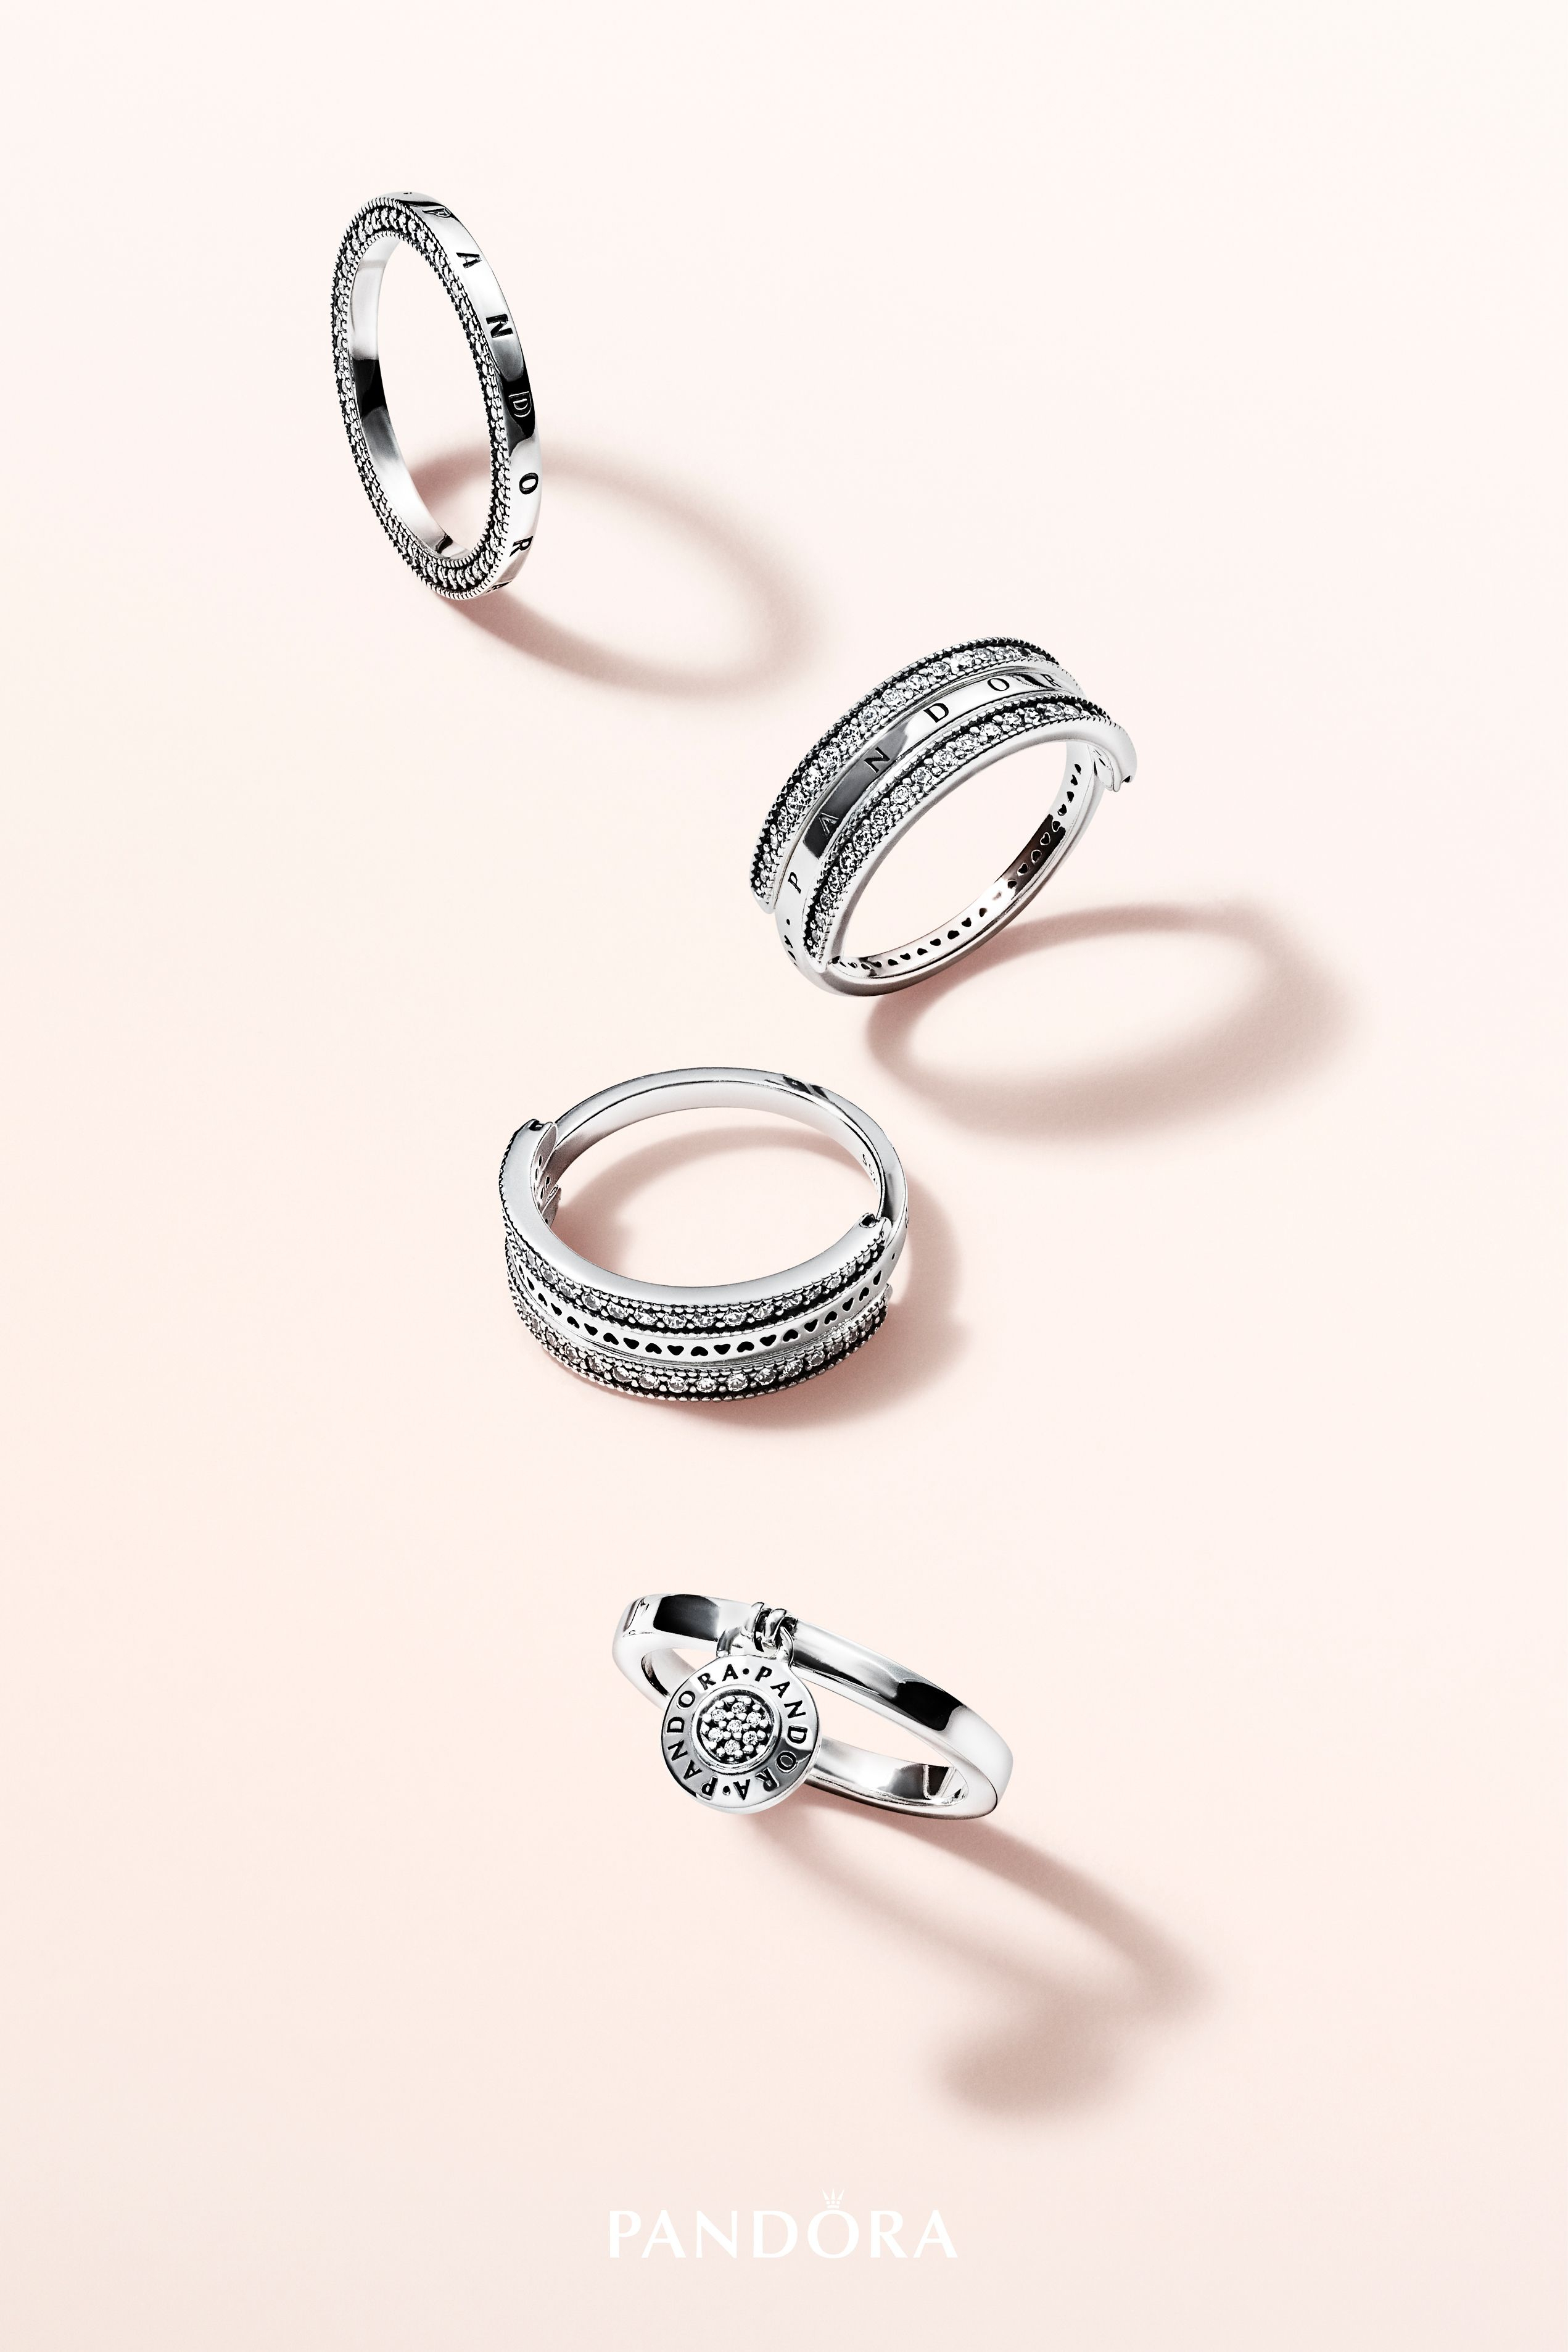 Make A Timeless Statement With New Rings From The Pandora Signature Regarding Most Popular Pandora Logo Pavé Rings (Gallery 20 of 25)